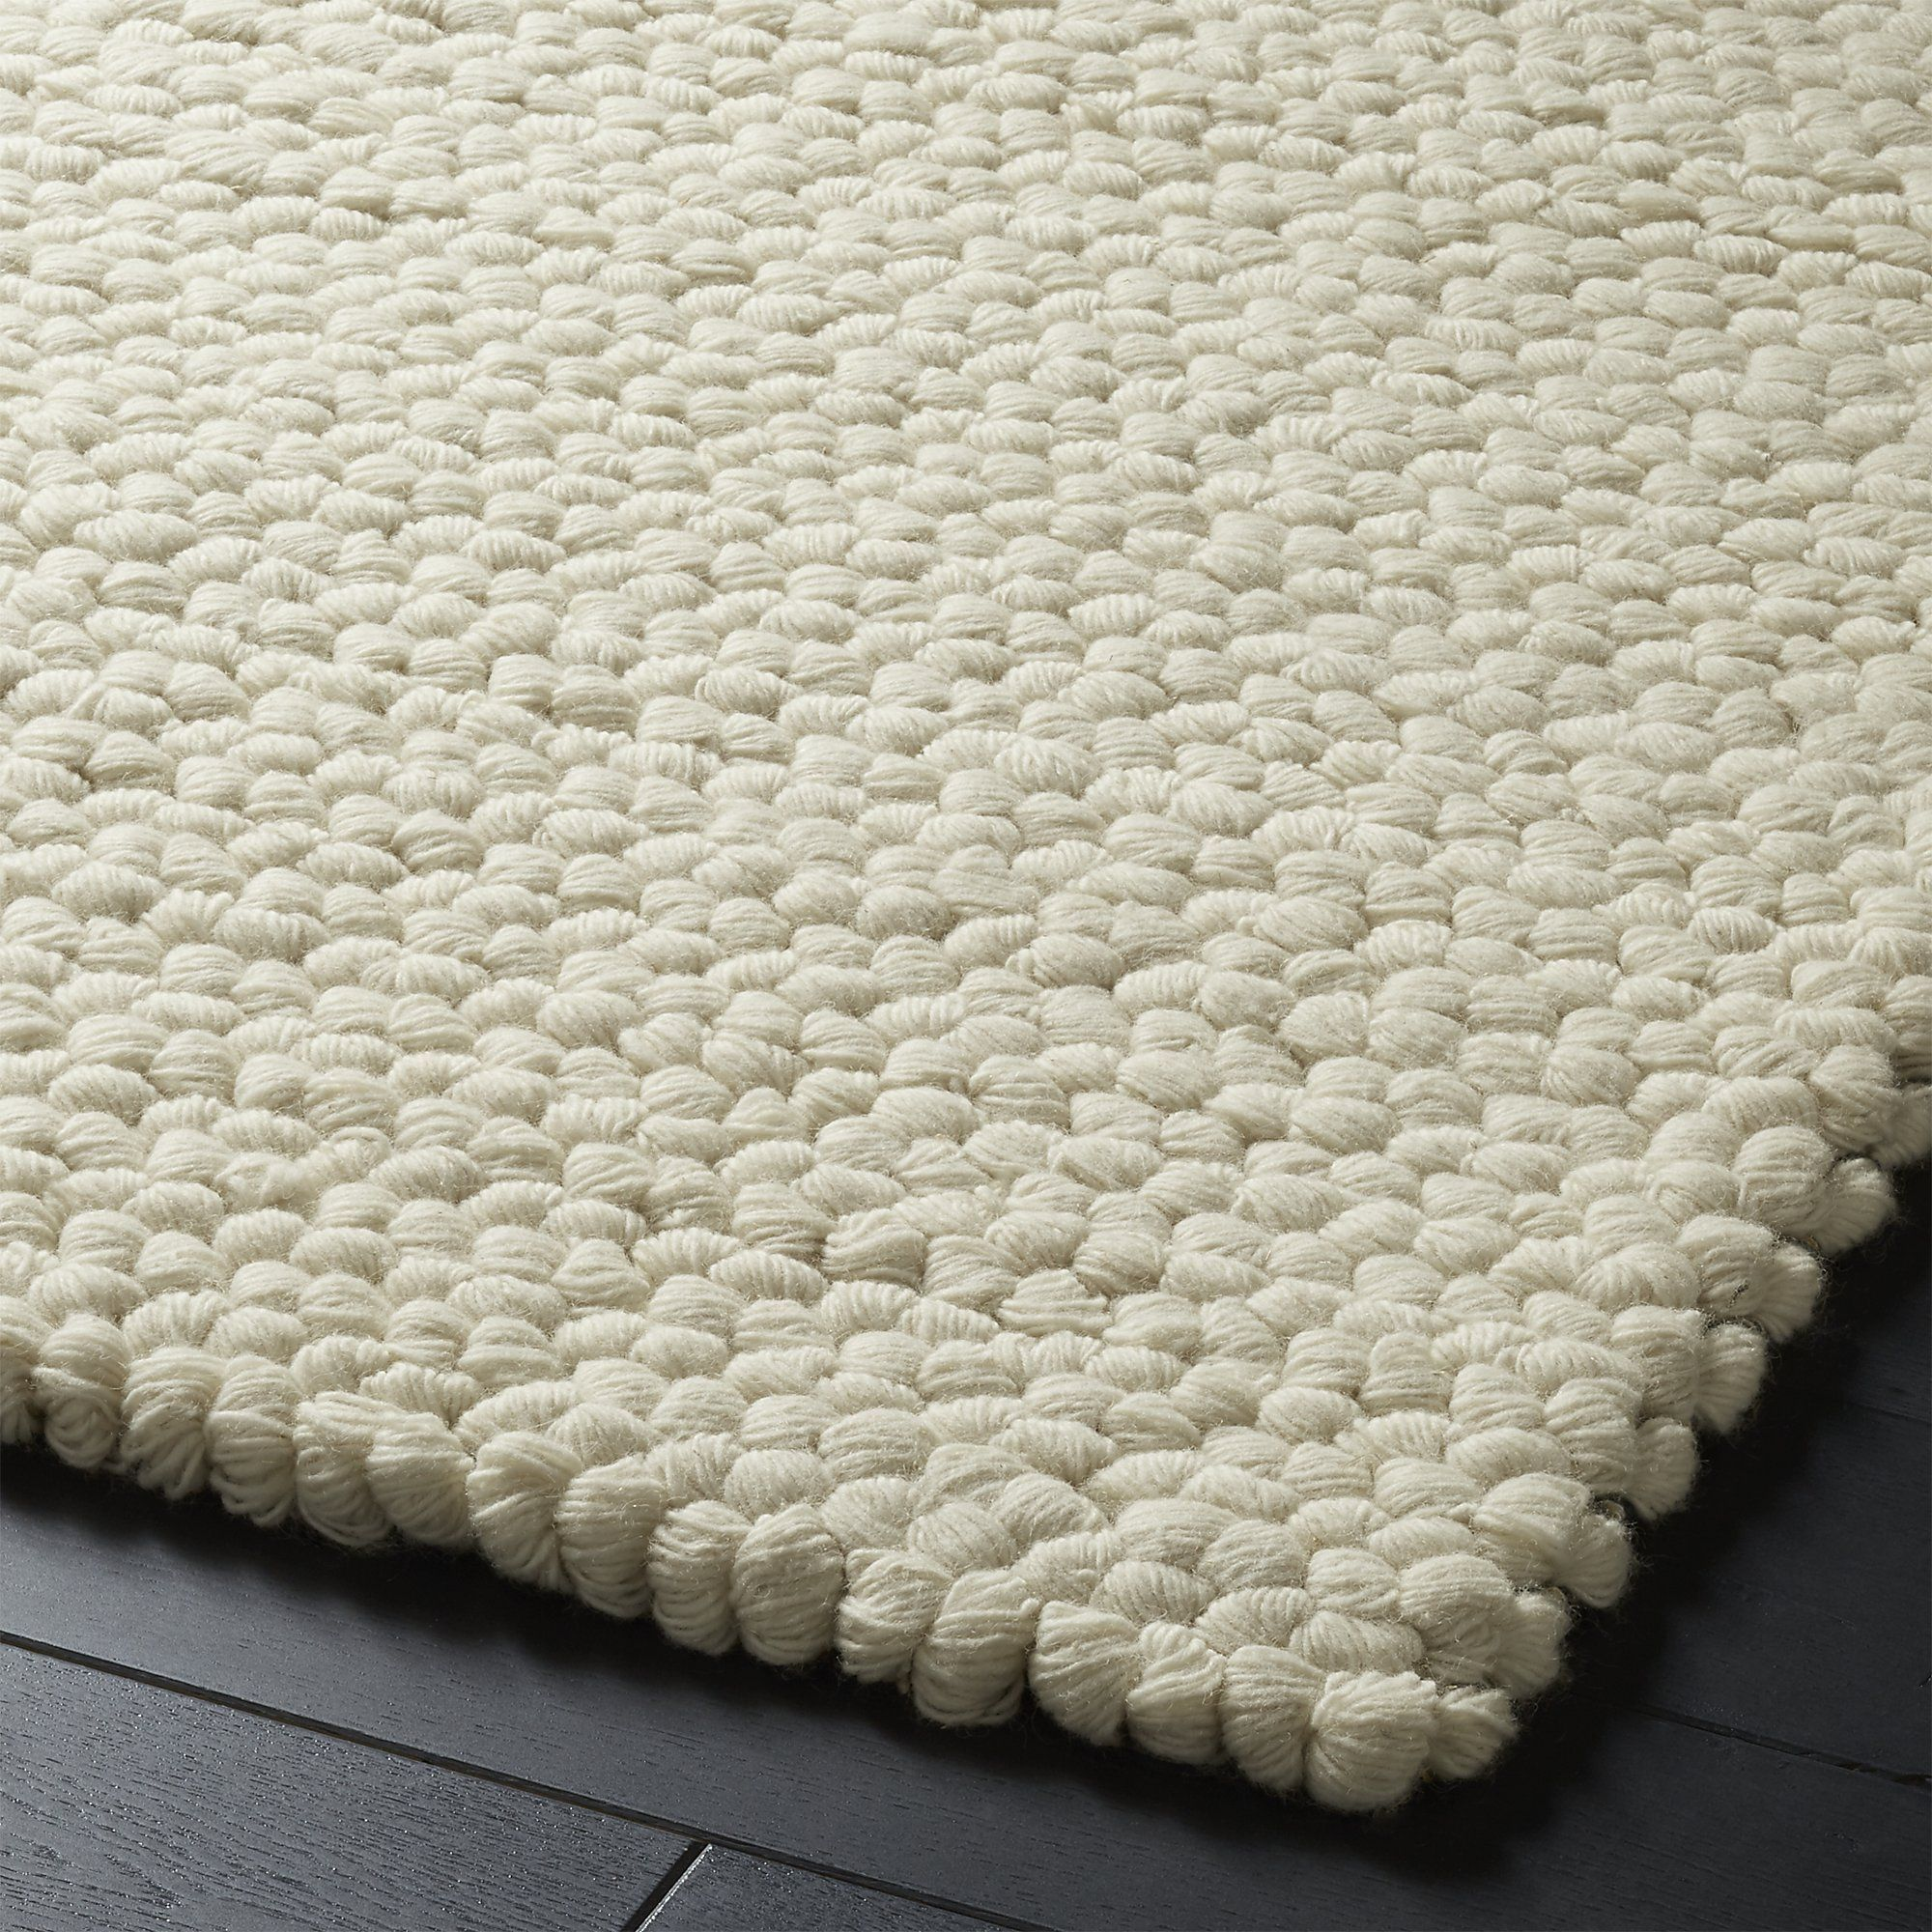 Shop Topknot Natural Wool Rug Narrow Wool Yarn Is Woven Row By Row Secured With Light Grey And Yellow Yarn And Pulled Through To Create La Natural Wool Rugs